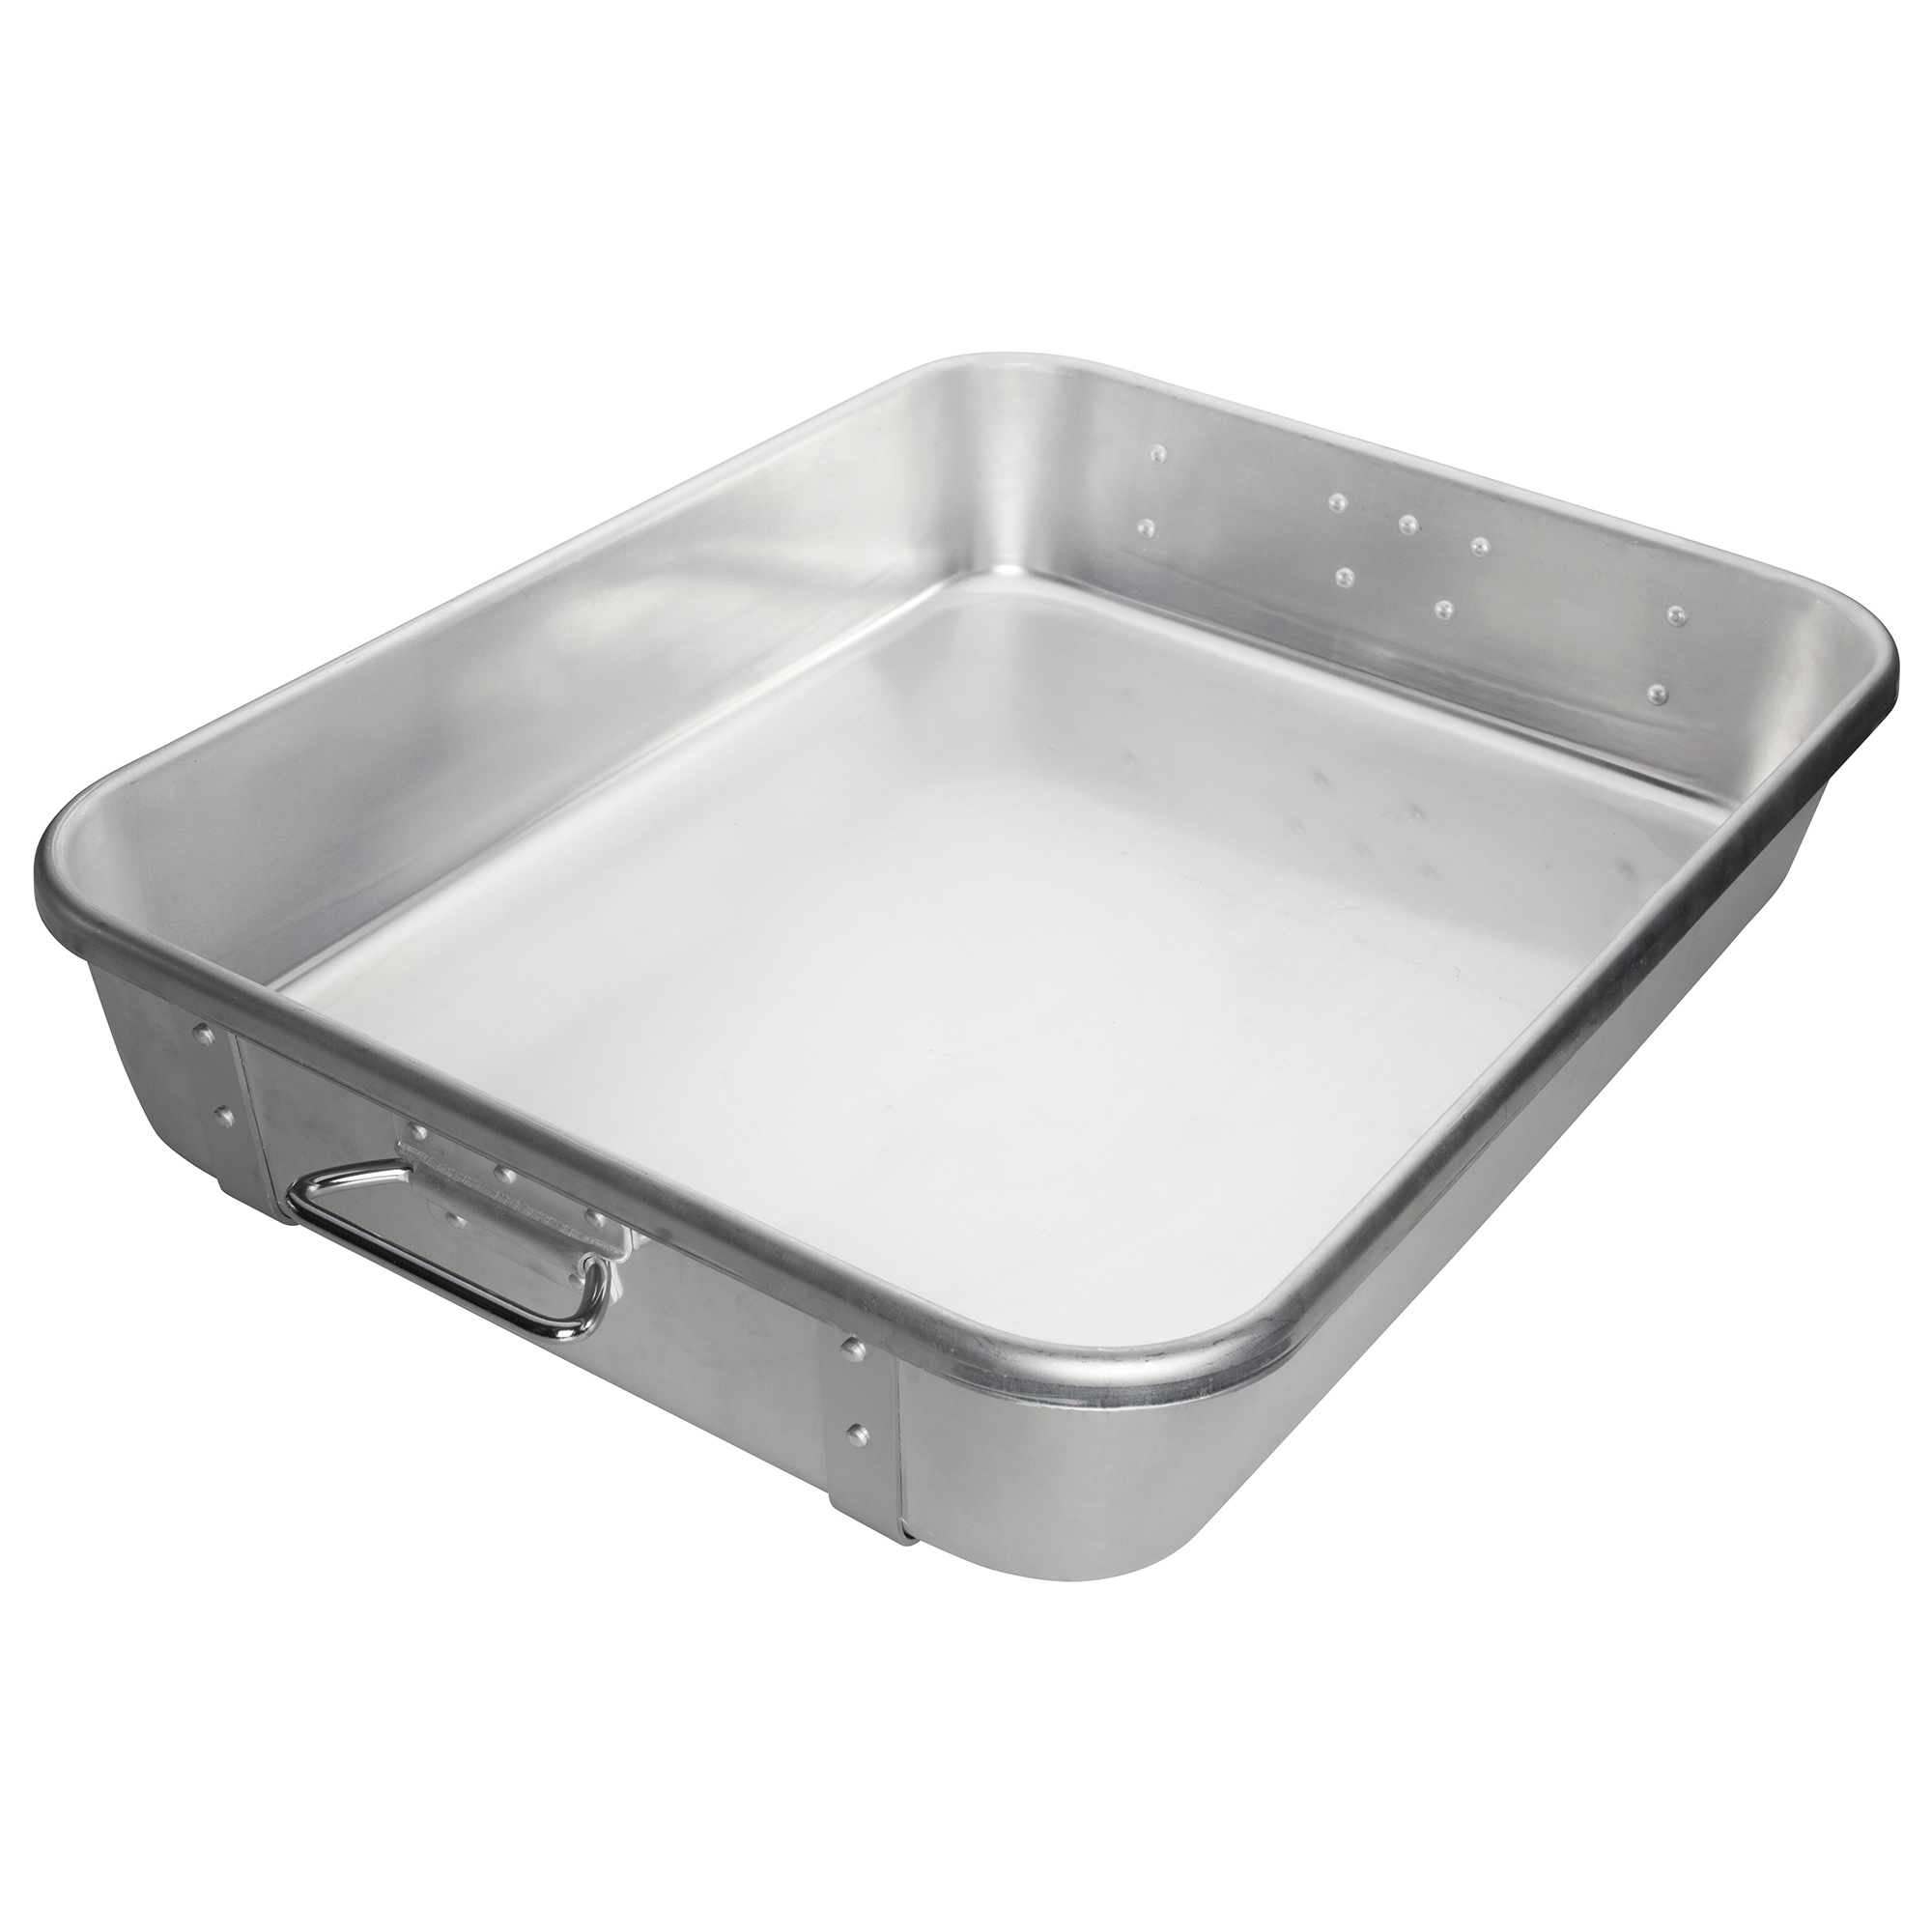 Winco ALRP-1824 roasting pan